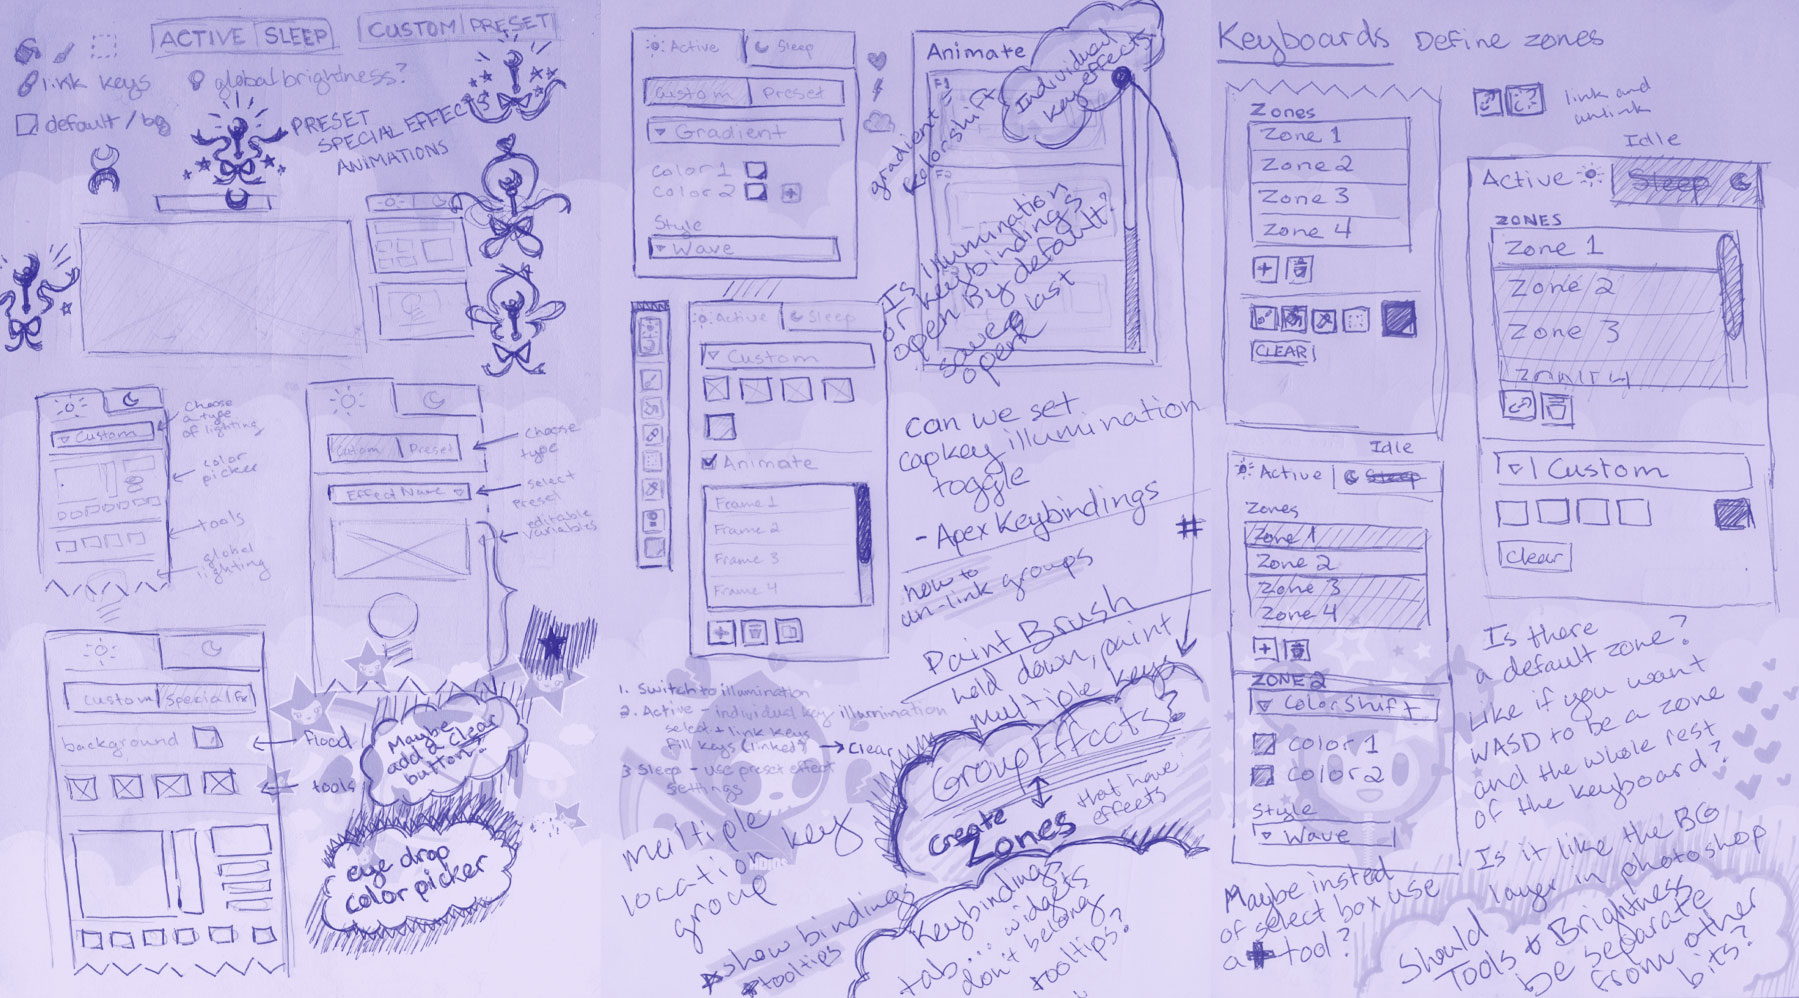 Early sketches of different UI approaches (and some unrelated doodles)